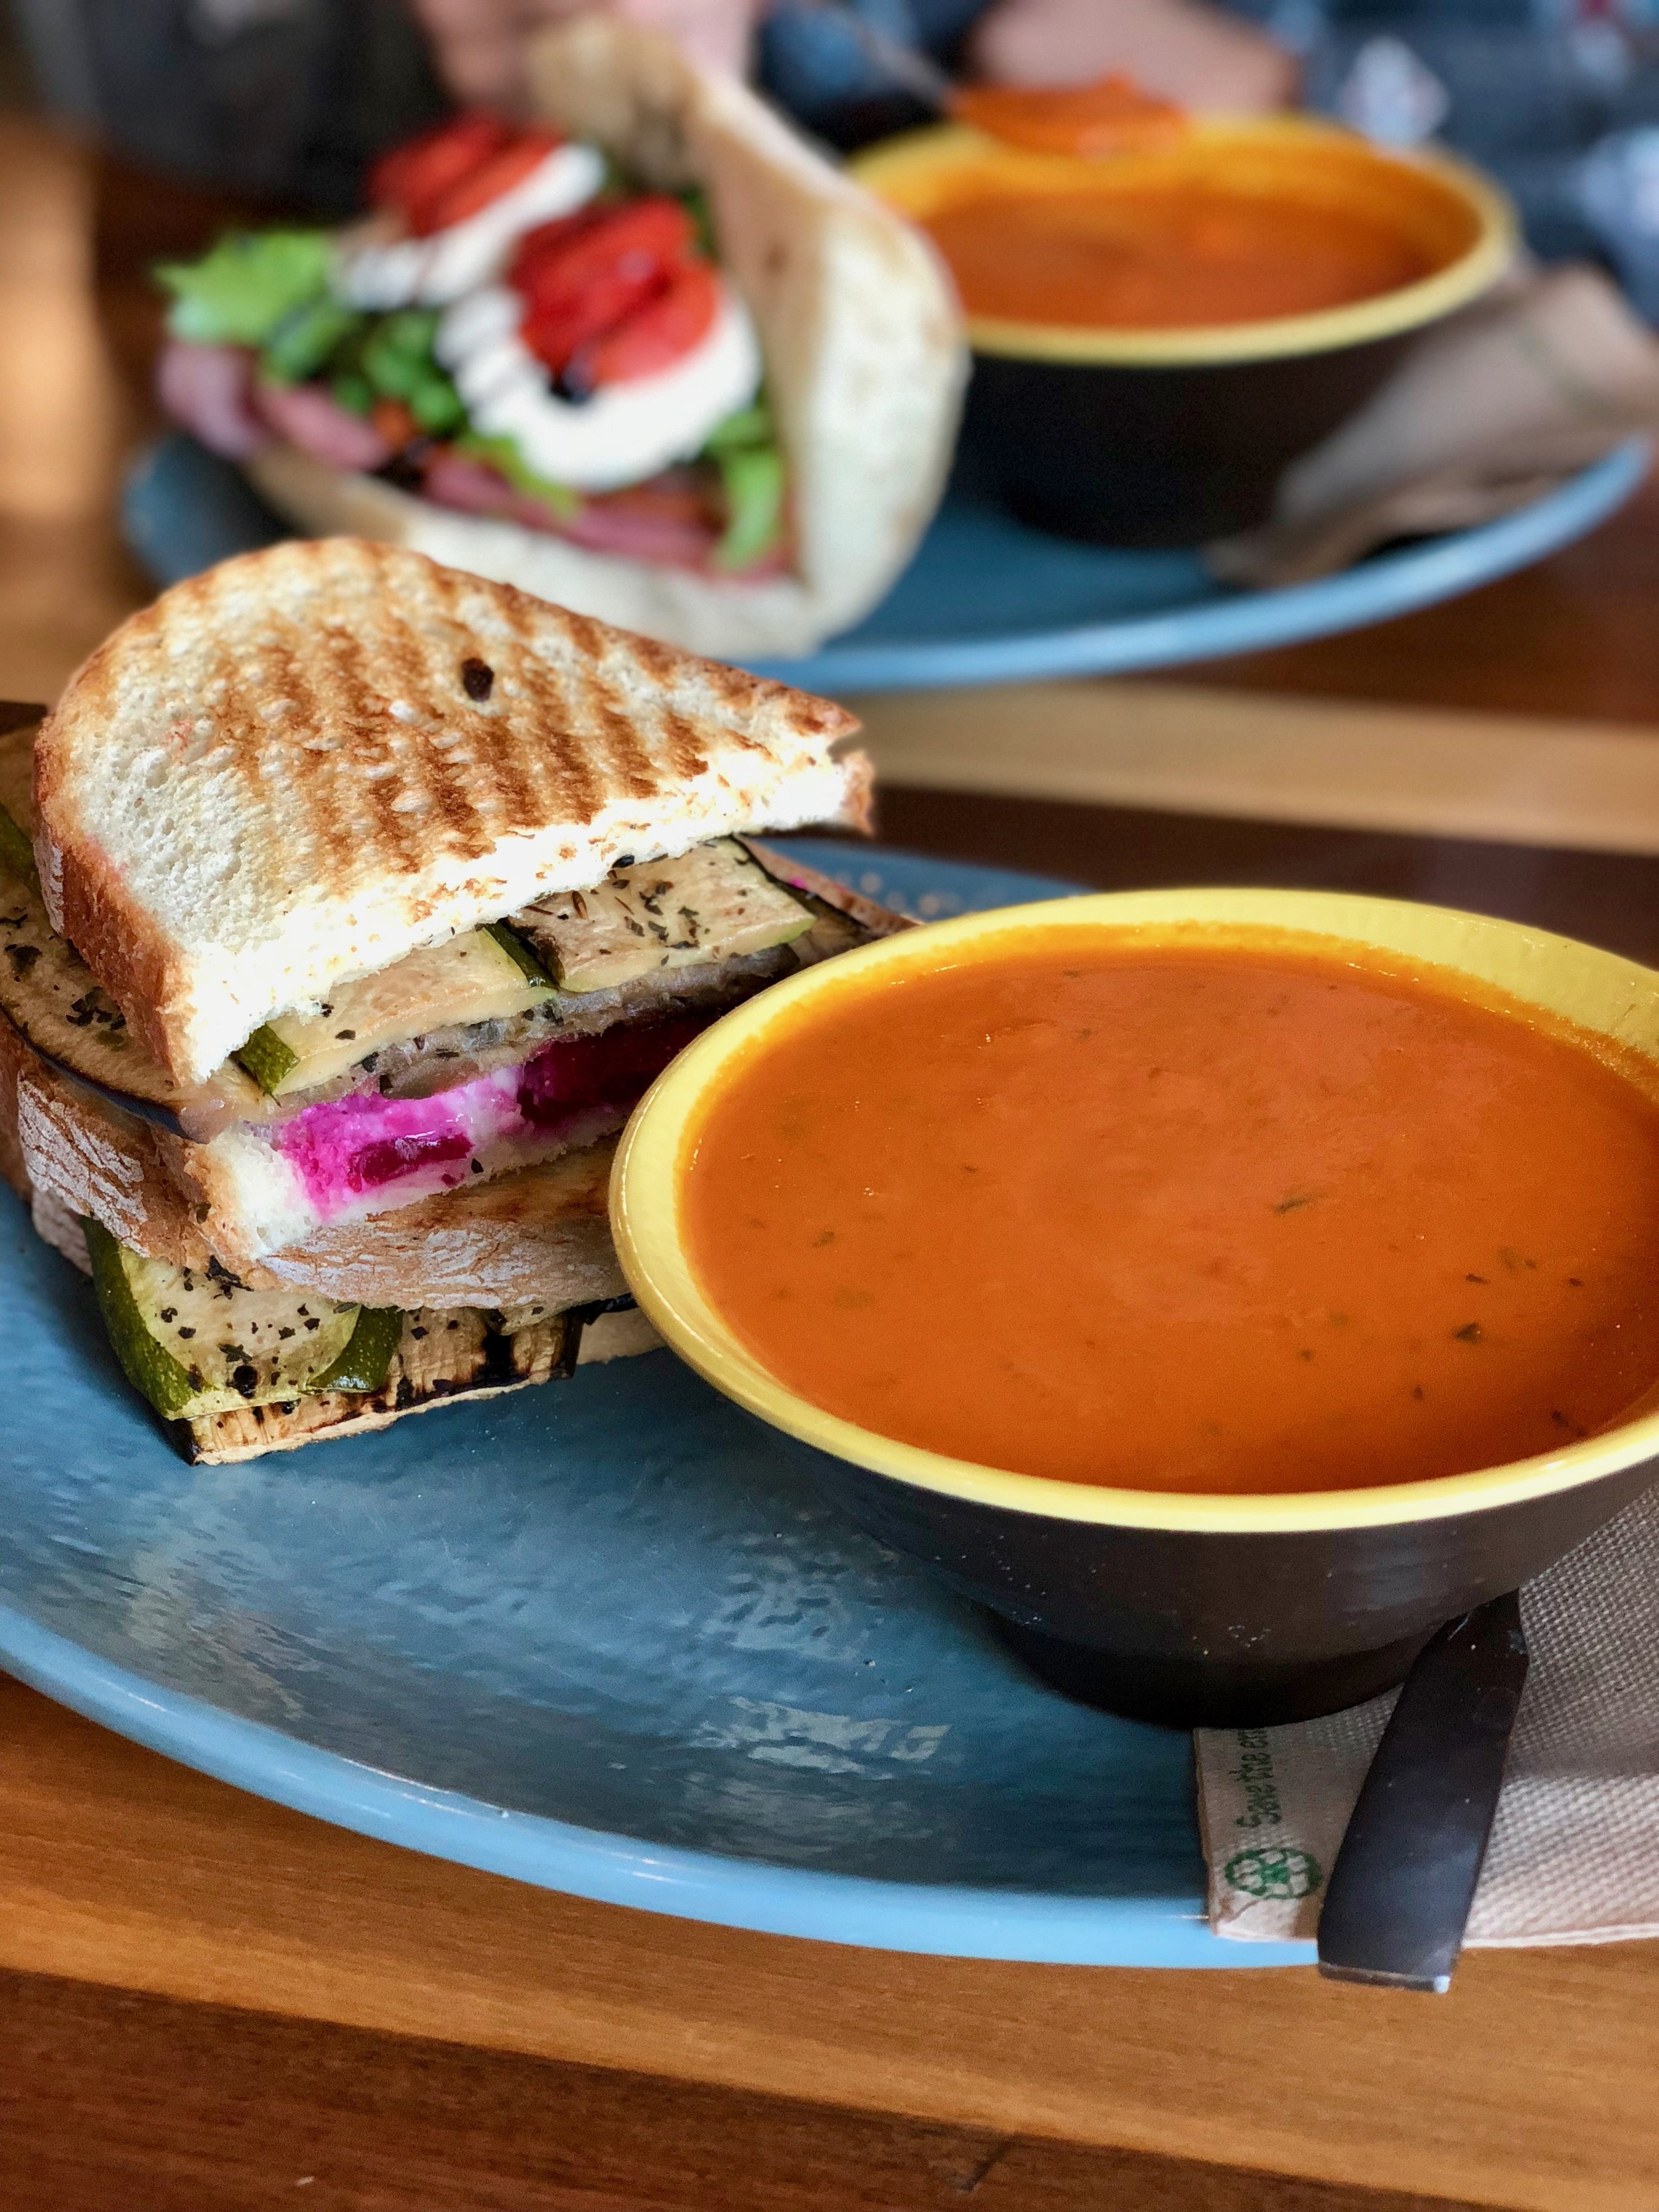 Pressed Ponto sandwich: roasted veggies ((like zucchini and eggplant)) with beats and feta ((you can opt for no feta if you are Vegan)) smothered in garlic aioli; plus a tomato bisque.